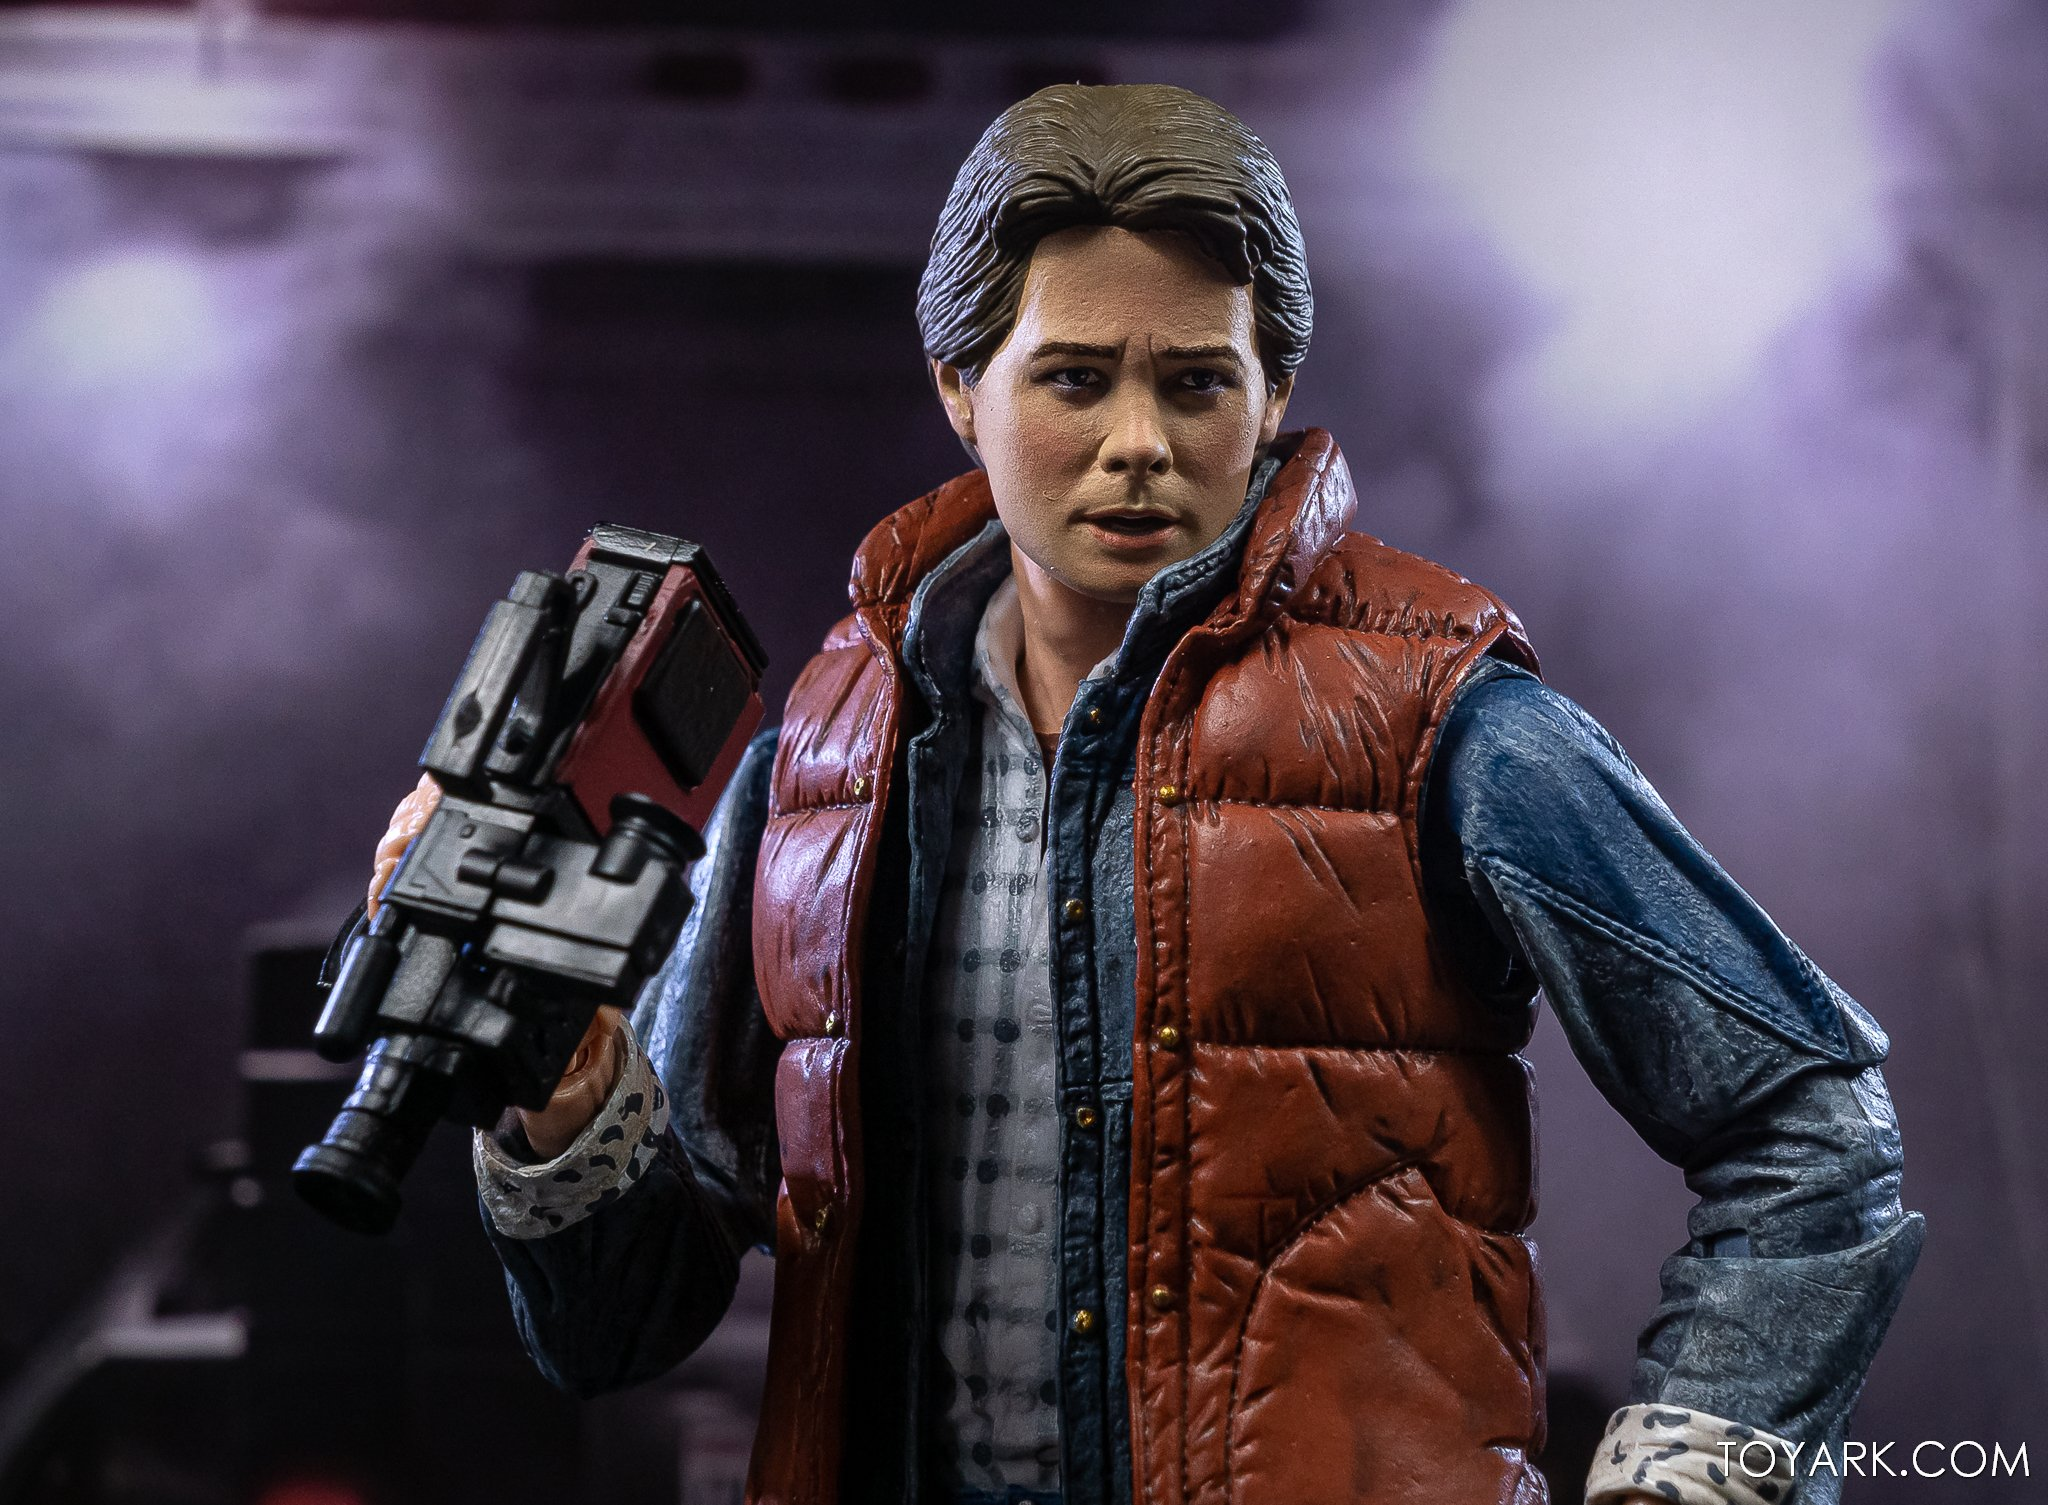 https://news.toyark.com/wp-content/uploads/sites/4/2020/10/NECA-Ultimate-Marty-McFly-Figure-017.jpg